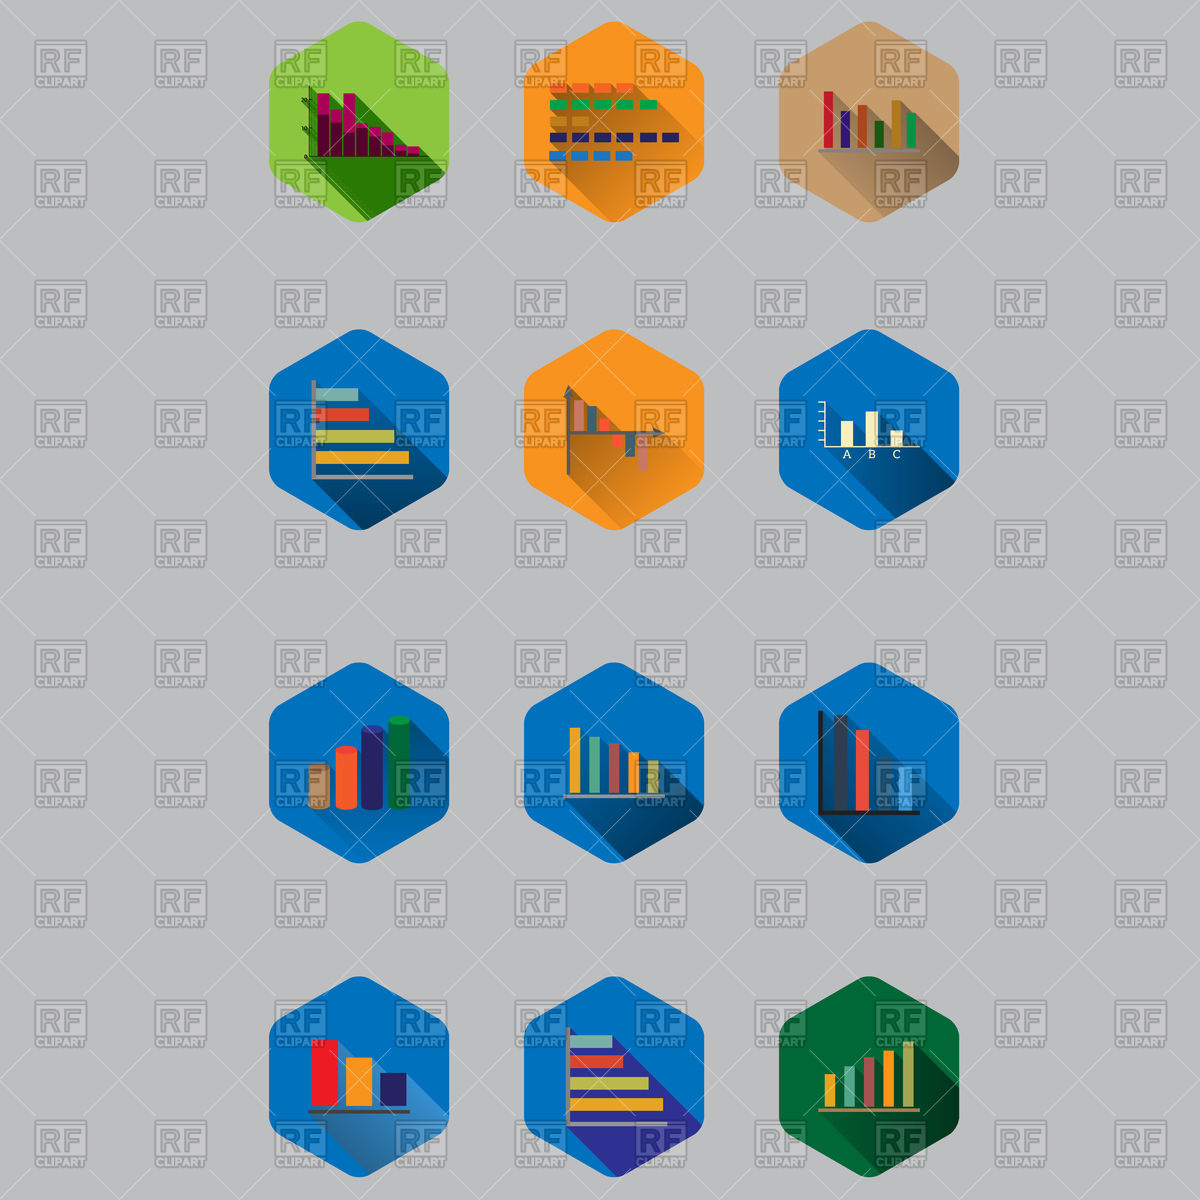 Business Diagrams And Graphics Flat Icons 96392 Icons And Emblems